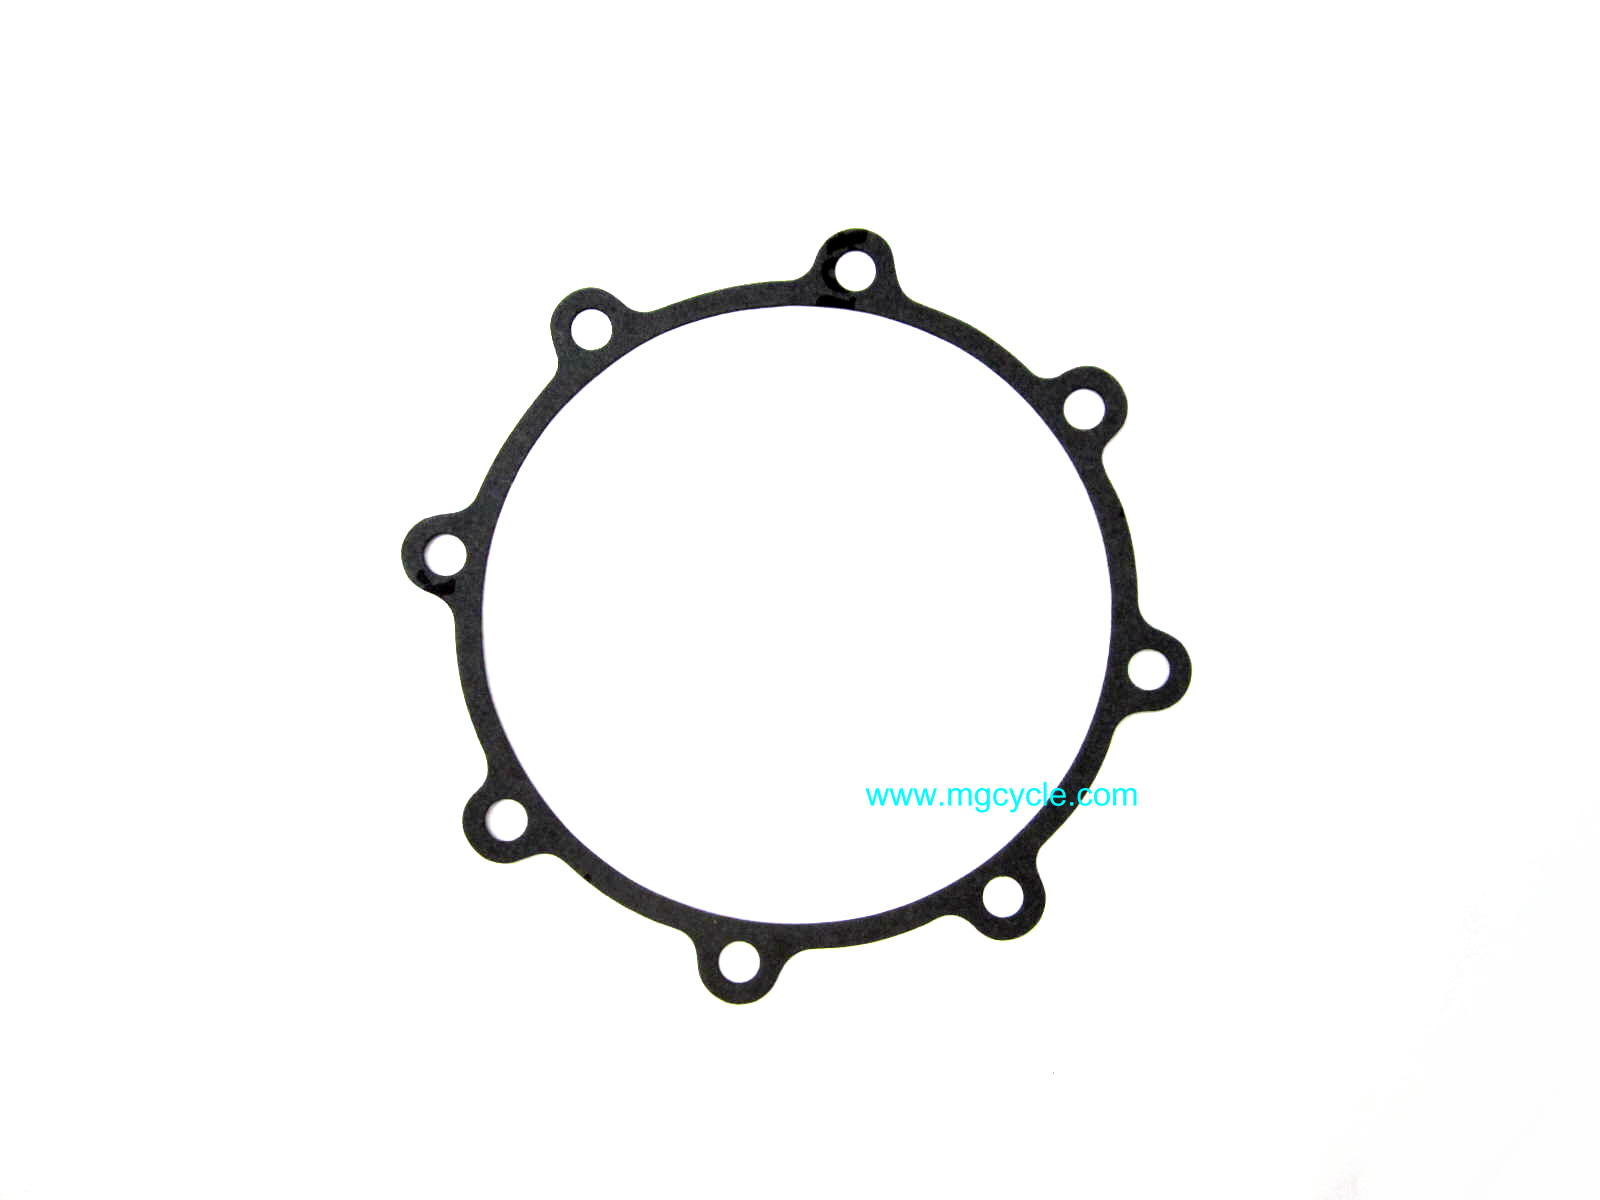 Rear main bearing carrier flange gasket Big Twins GU12011800